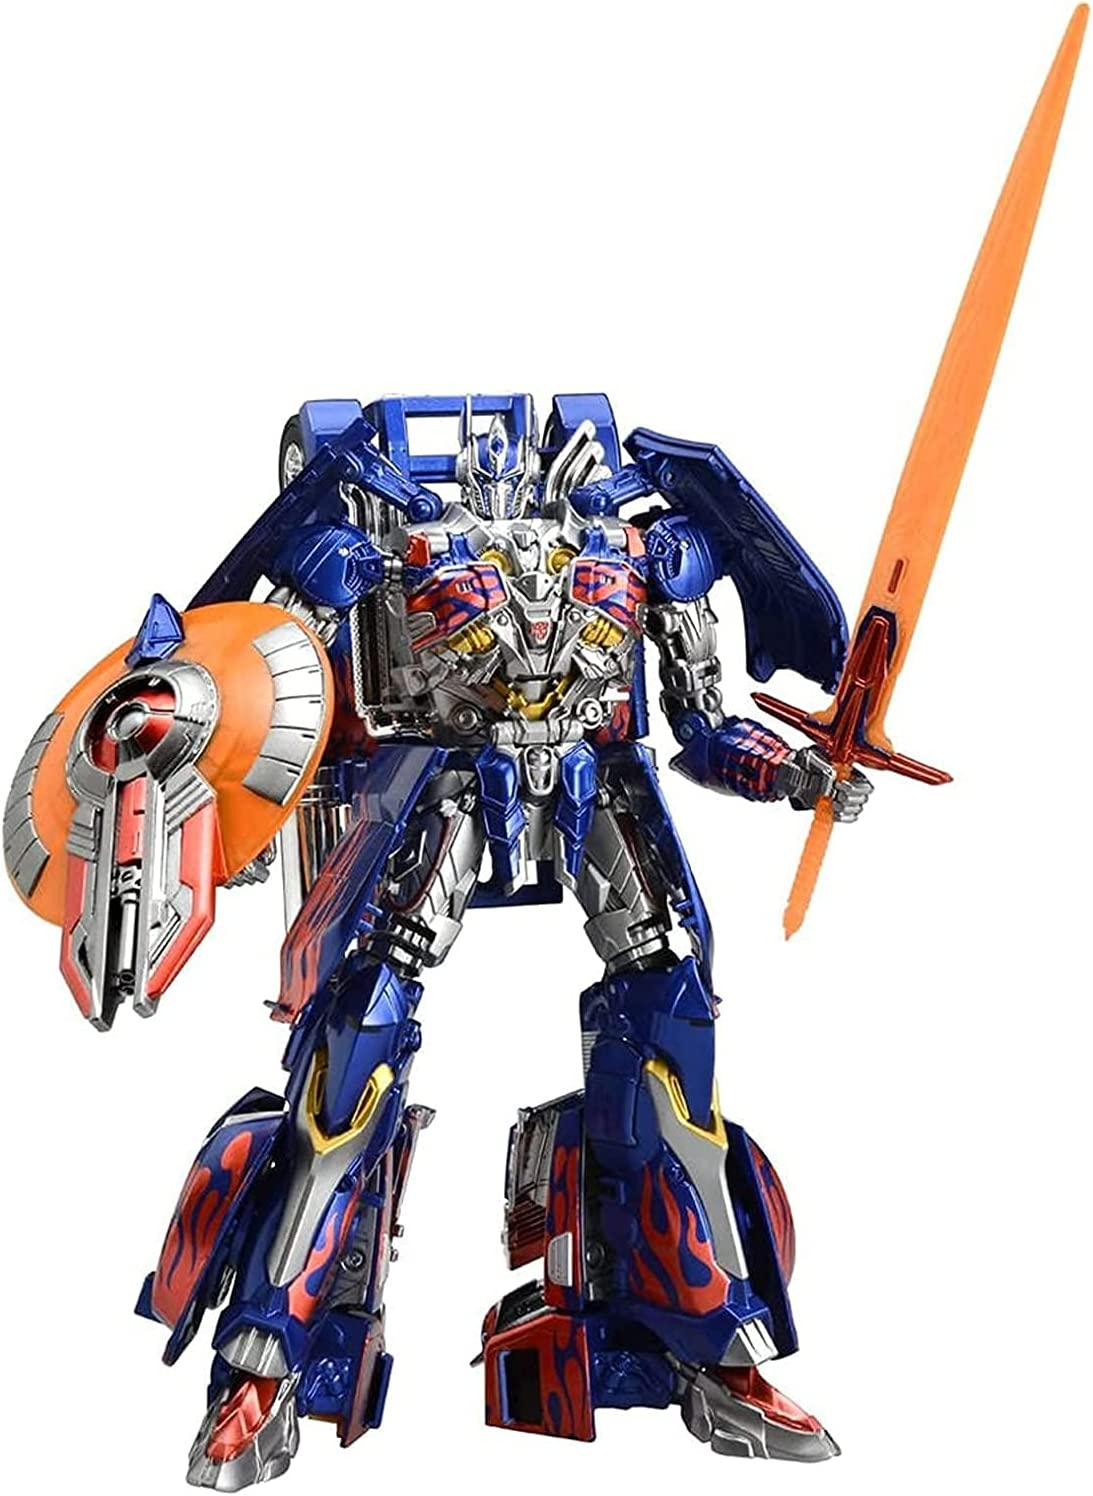 RSVPhandcrafted Transformer Toys Jacksonville Mall Movie 4 of Leade Popularity Extinction Age